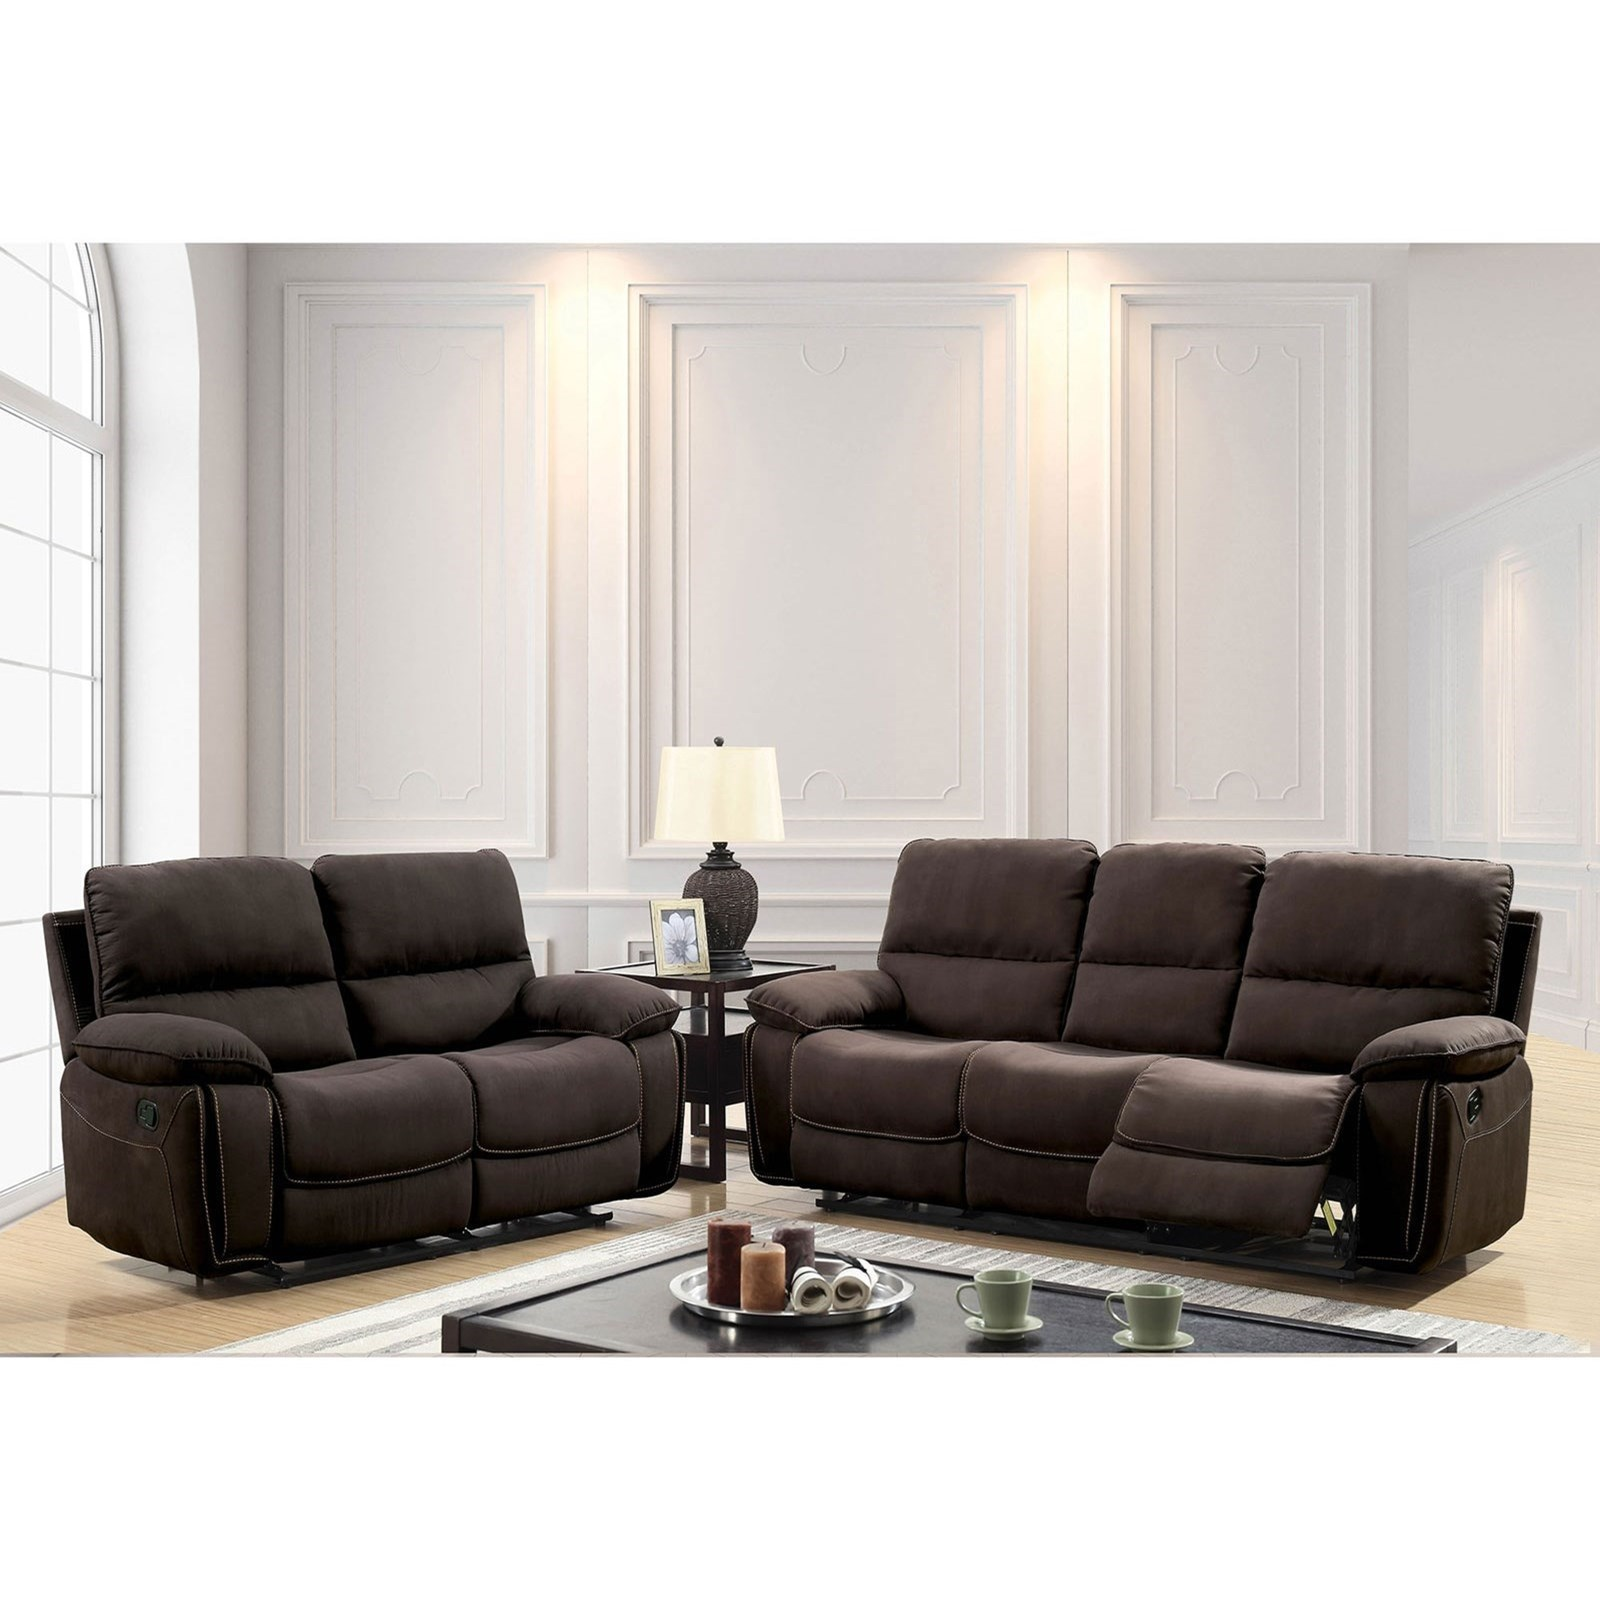 Amaris Reclining Living Room Group by Furniture of America at Nassau Furniture and Mattress